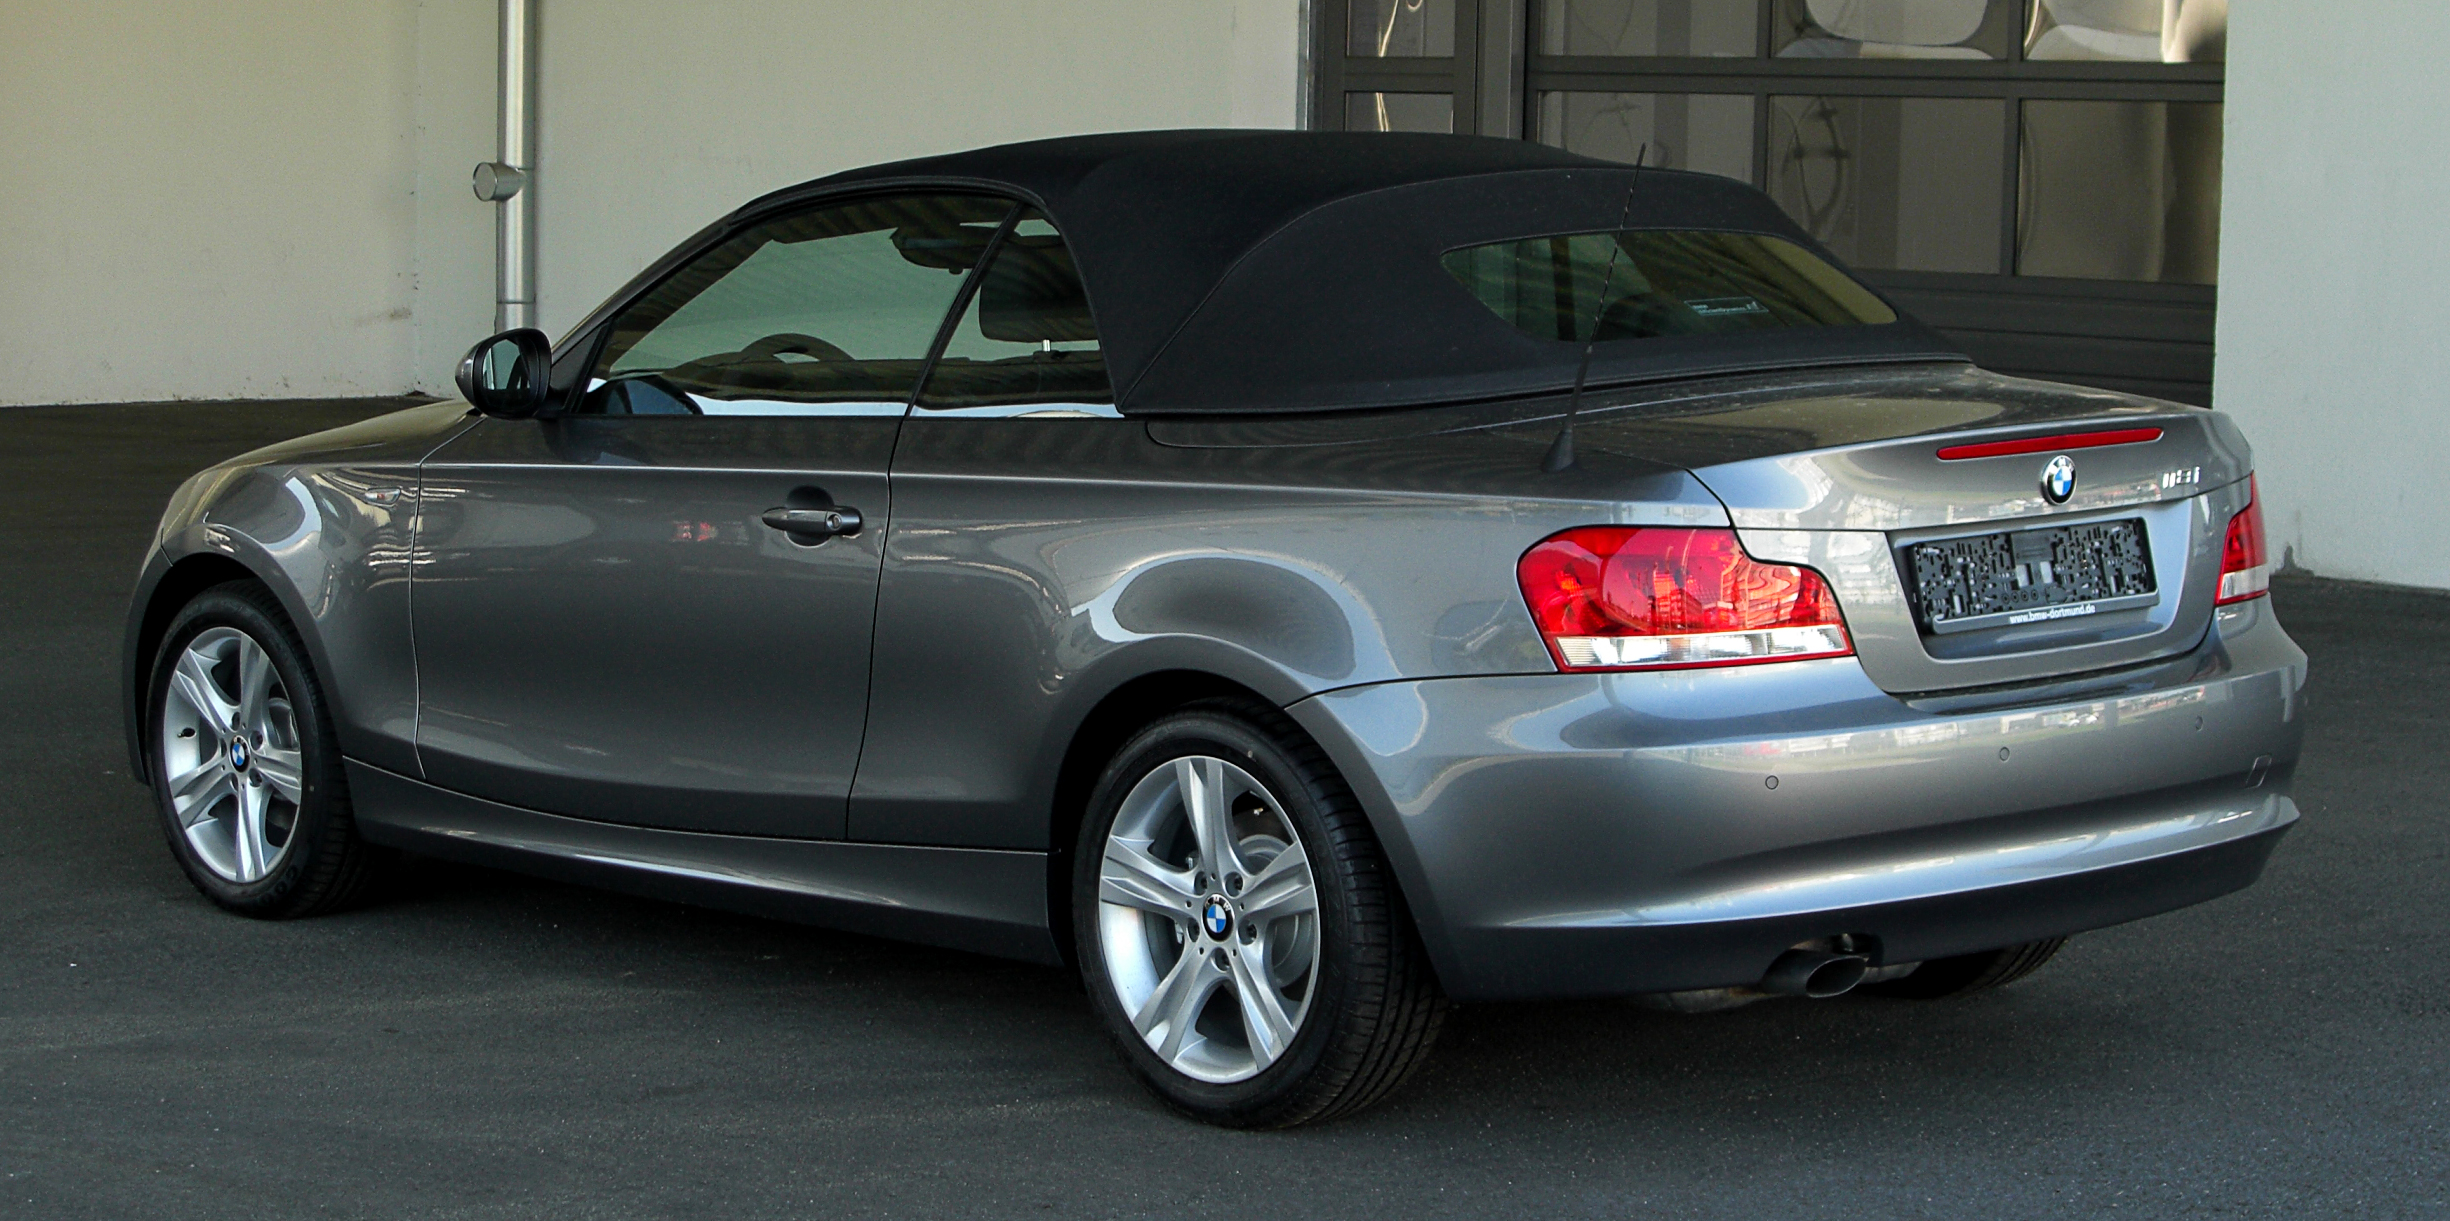 file bmw 118i cabriolet e88 facelift heckansicht 1 mai 2011 d wikimedia. Black Bedroom Furniture Sets. Home Design Ideas